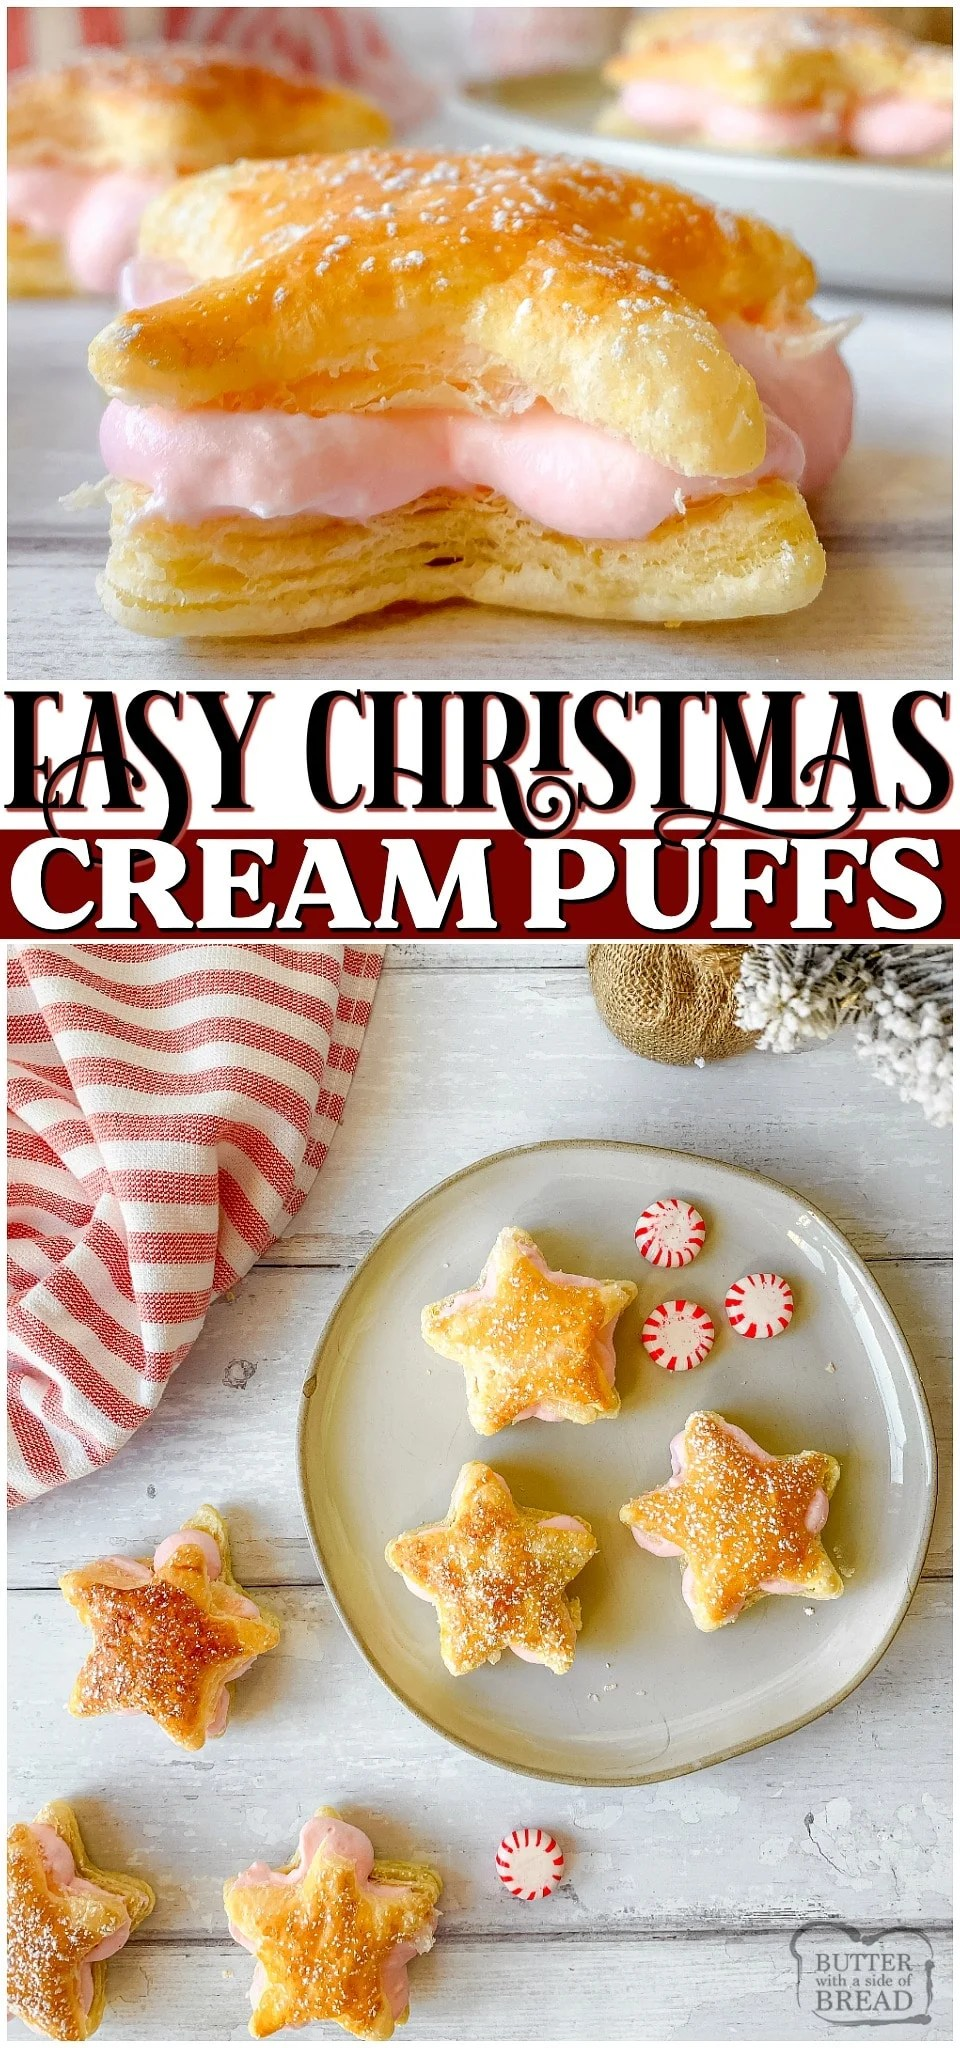 Peppermint Cream Puff Stars are a simple, 4-ingredient cream puffs perfect for Christmas! With cute peppermint filled puff pastry stars, you can have a festive dessert that's so easy to make! #Christmas #creampuff #peppermint #dessert #easyrecipe from BUTTER WITH A SIDE OF BREAD